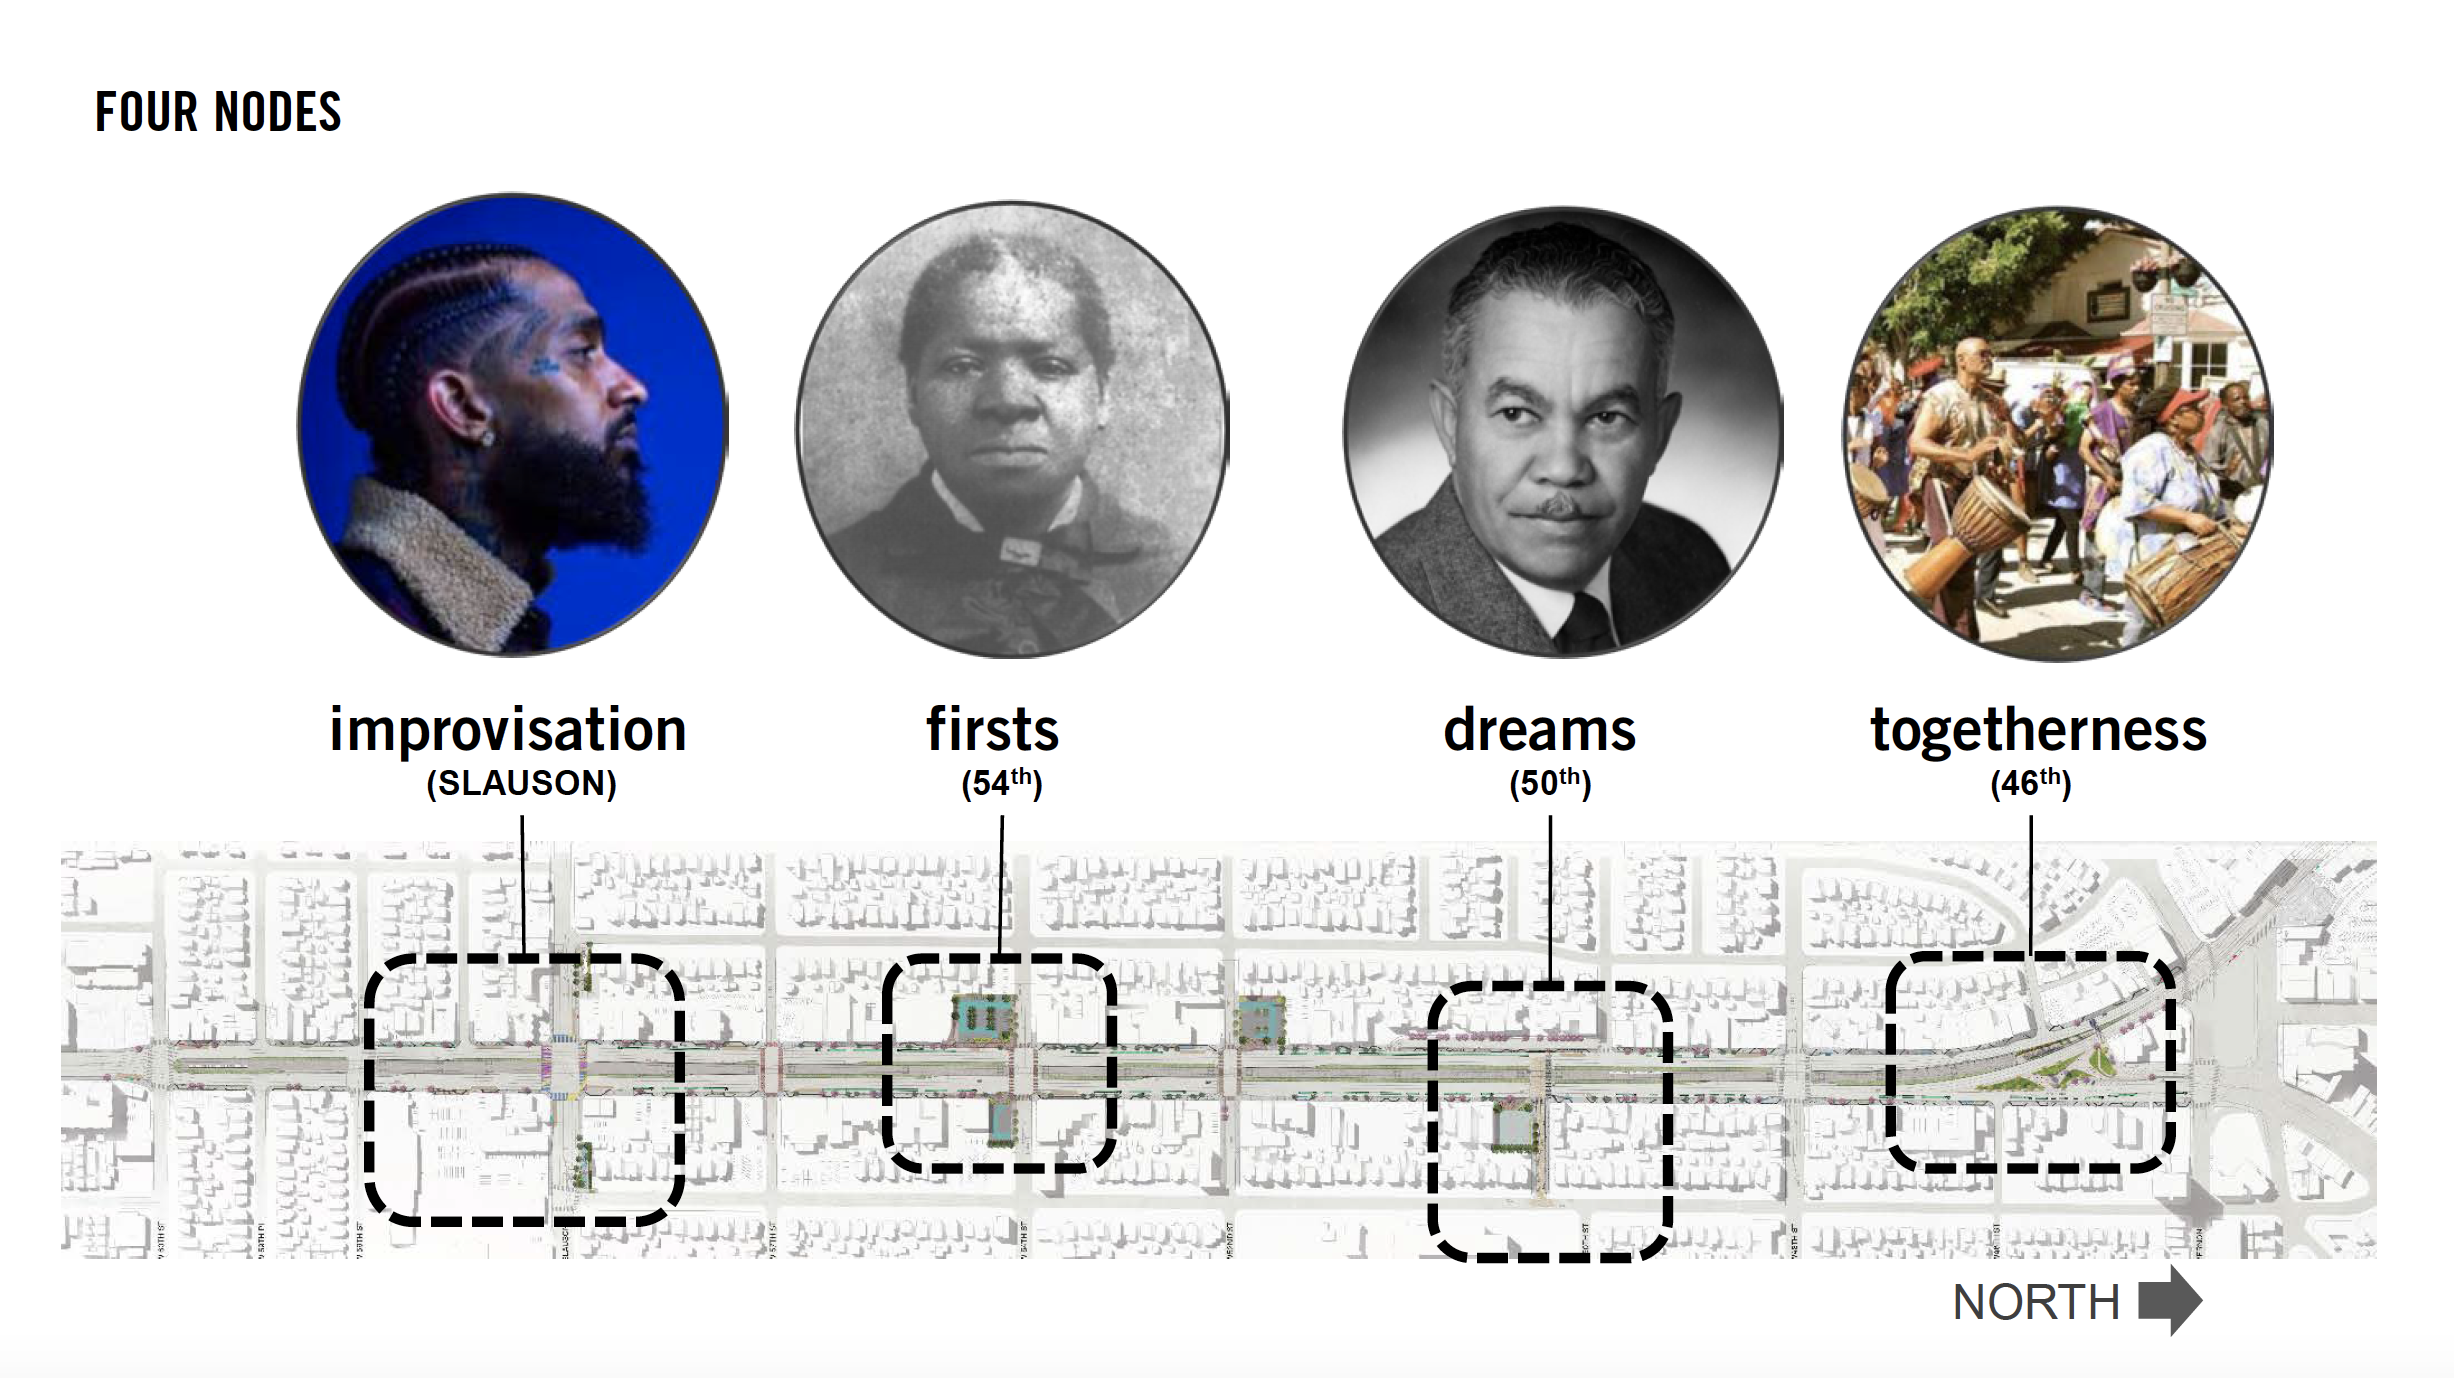 The nodes take inspiration from the stories of Nipsey Hussle, Biddy Mason, architect Paul Revere Williams, and the unifying of the diaspora. Image courtesy of Destination Crenshaw